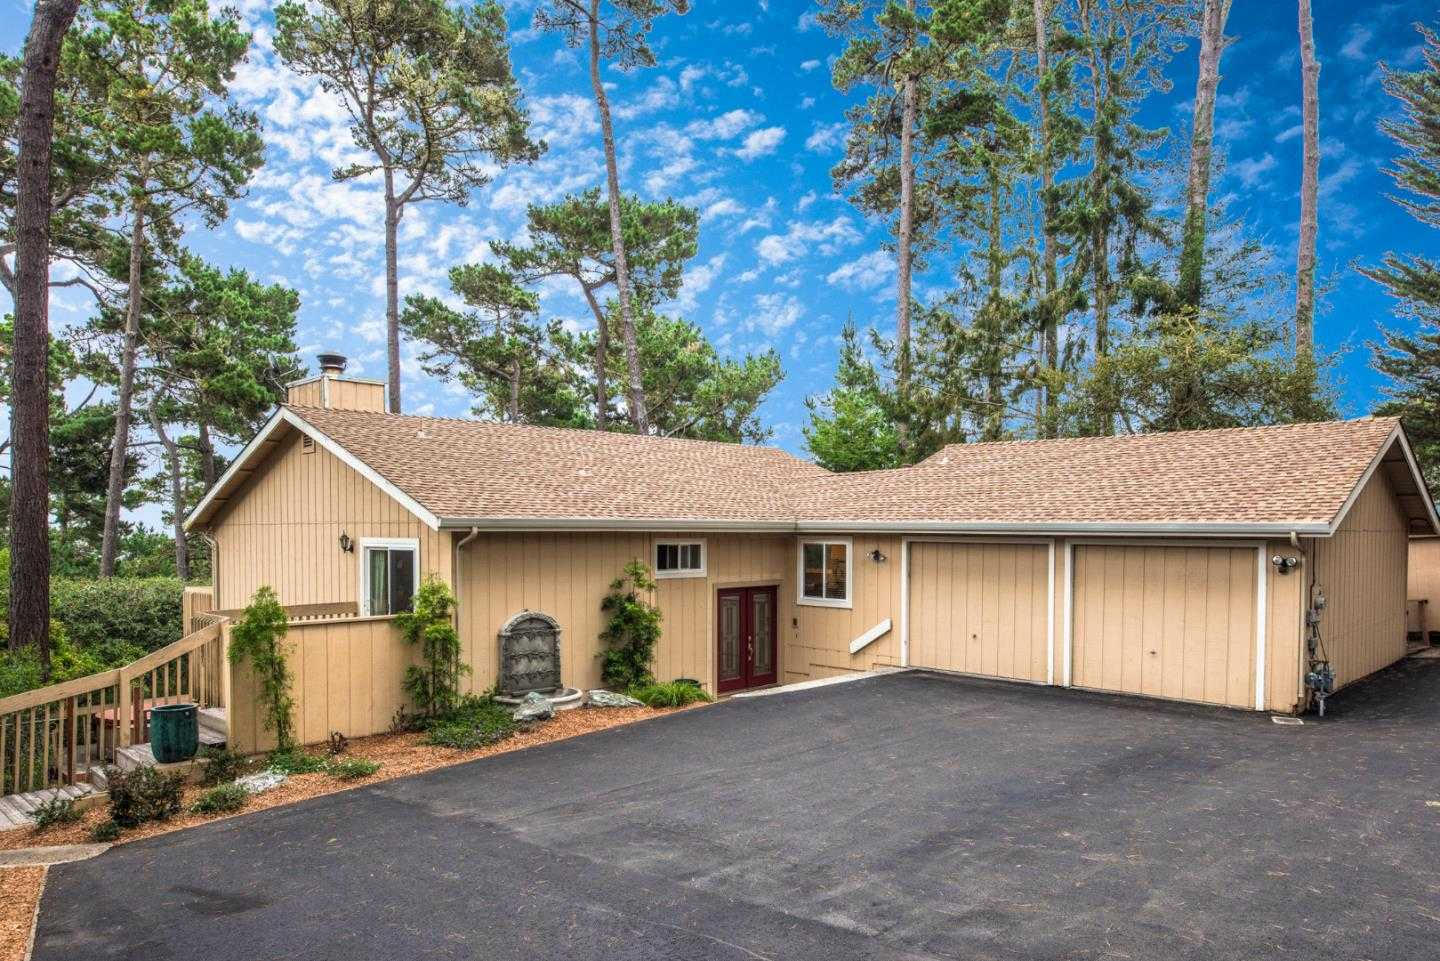 $899,000 - 4Br/3Ba -  for Sale in Pebble Beach